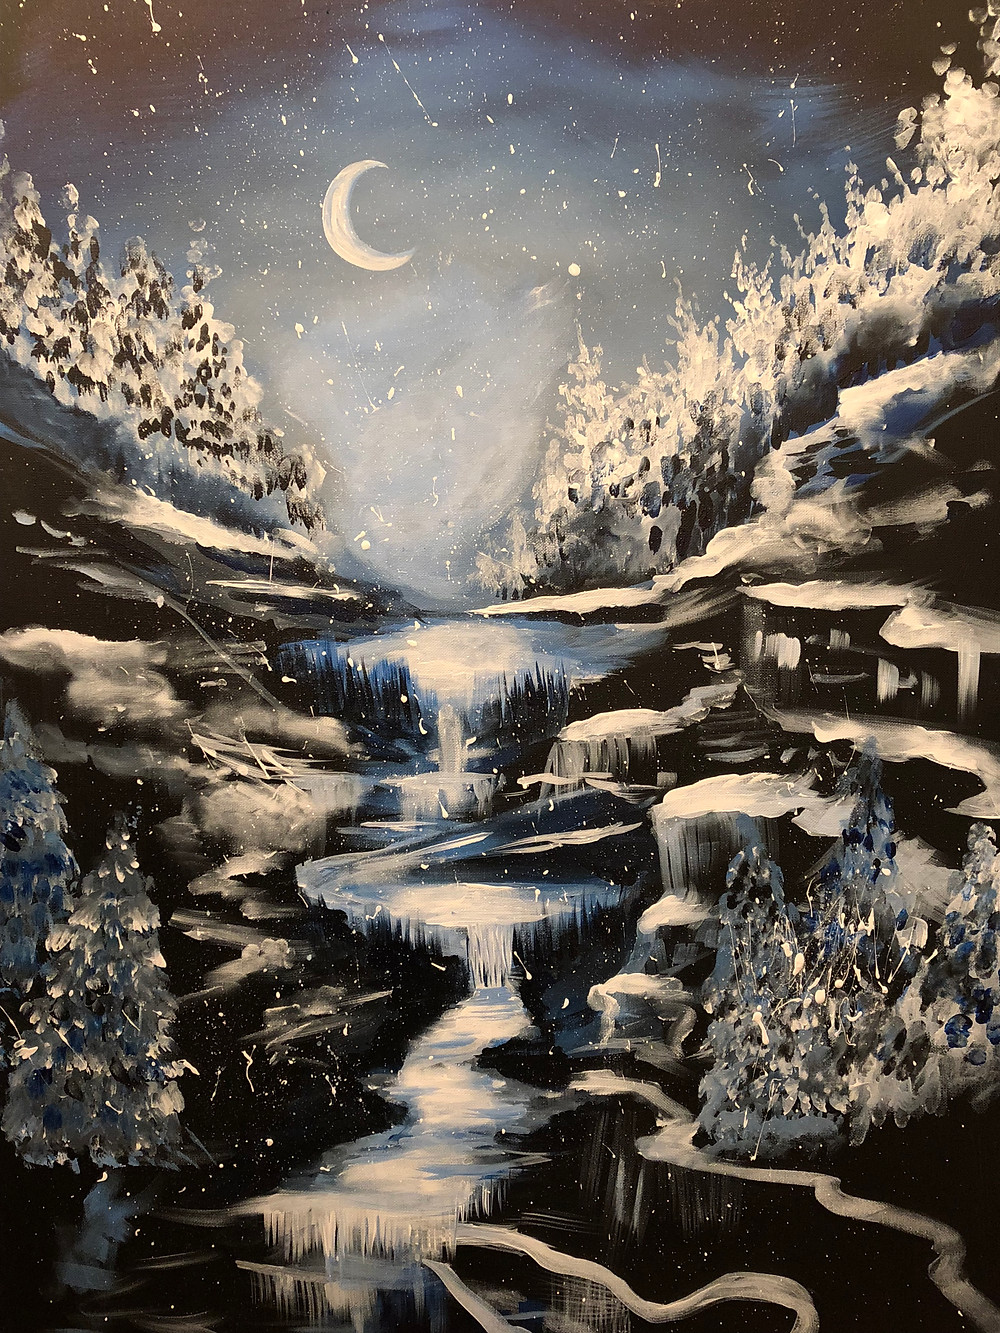 A wintry night-scape